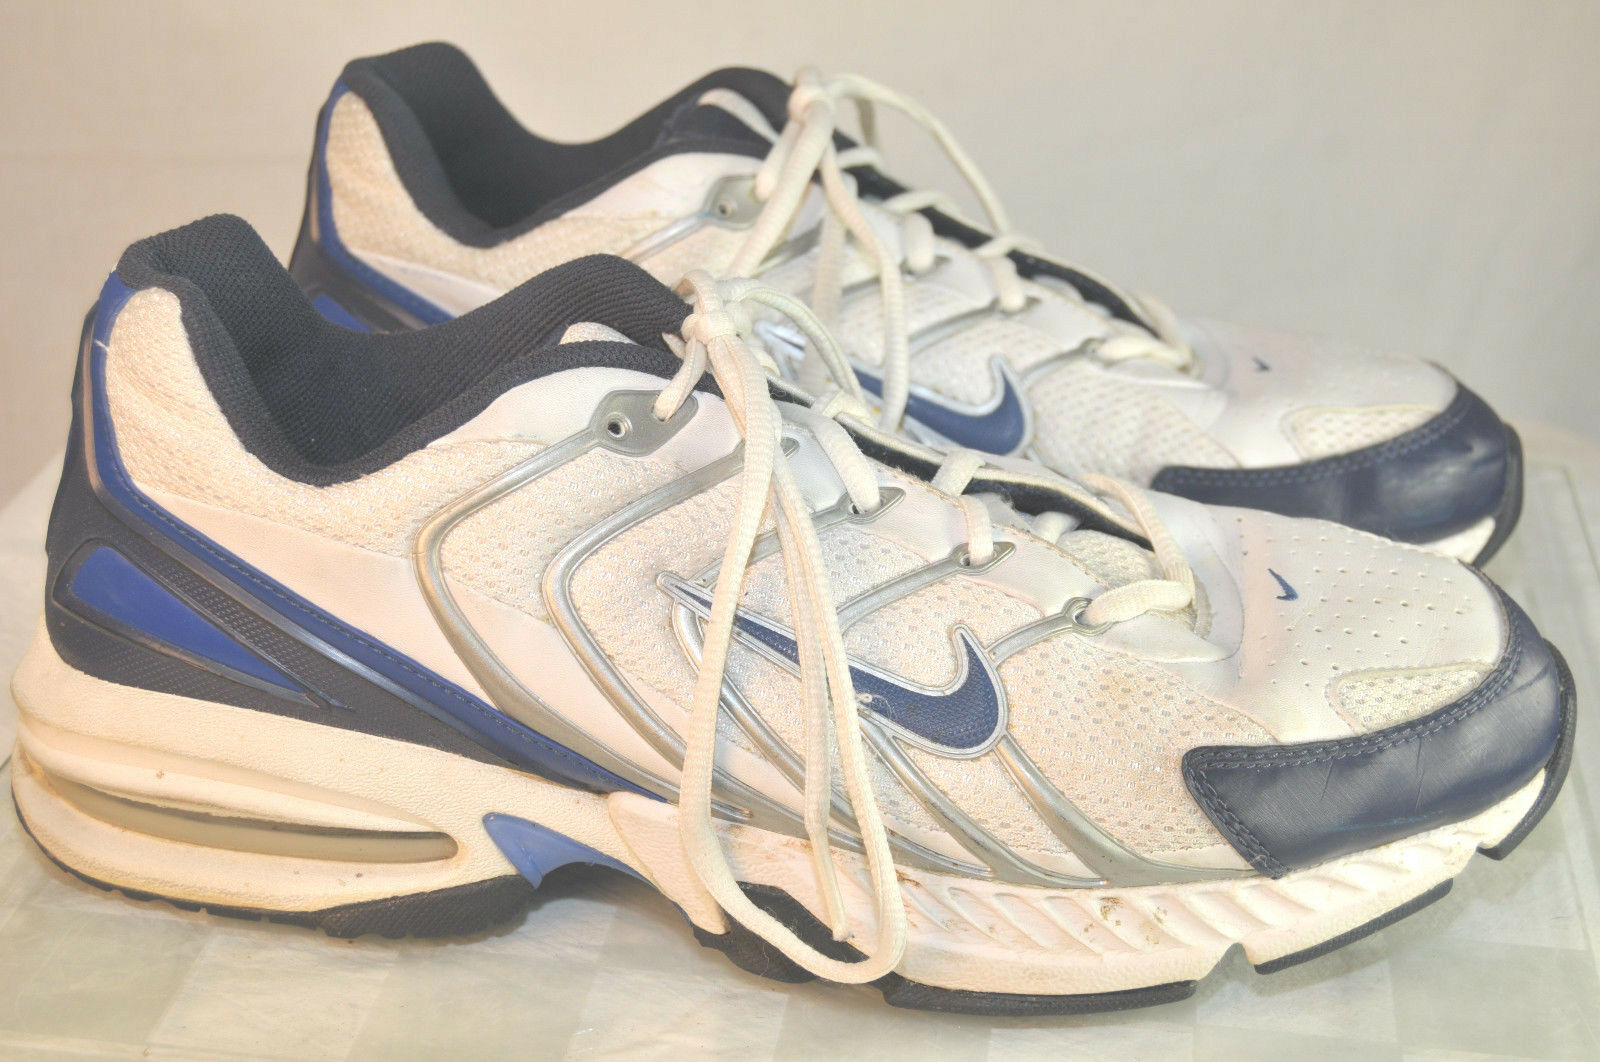 NIKE MAXAIR Dri-Fit Running Shoes Mens SIZE 11 White w Navy (310248-141)